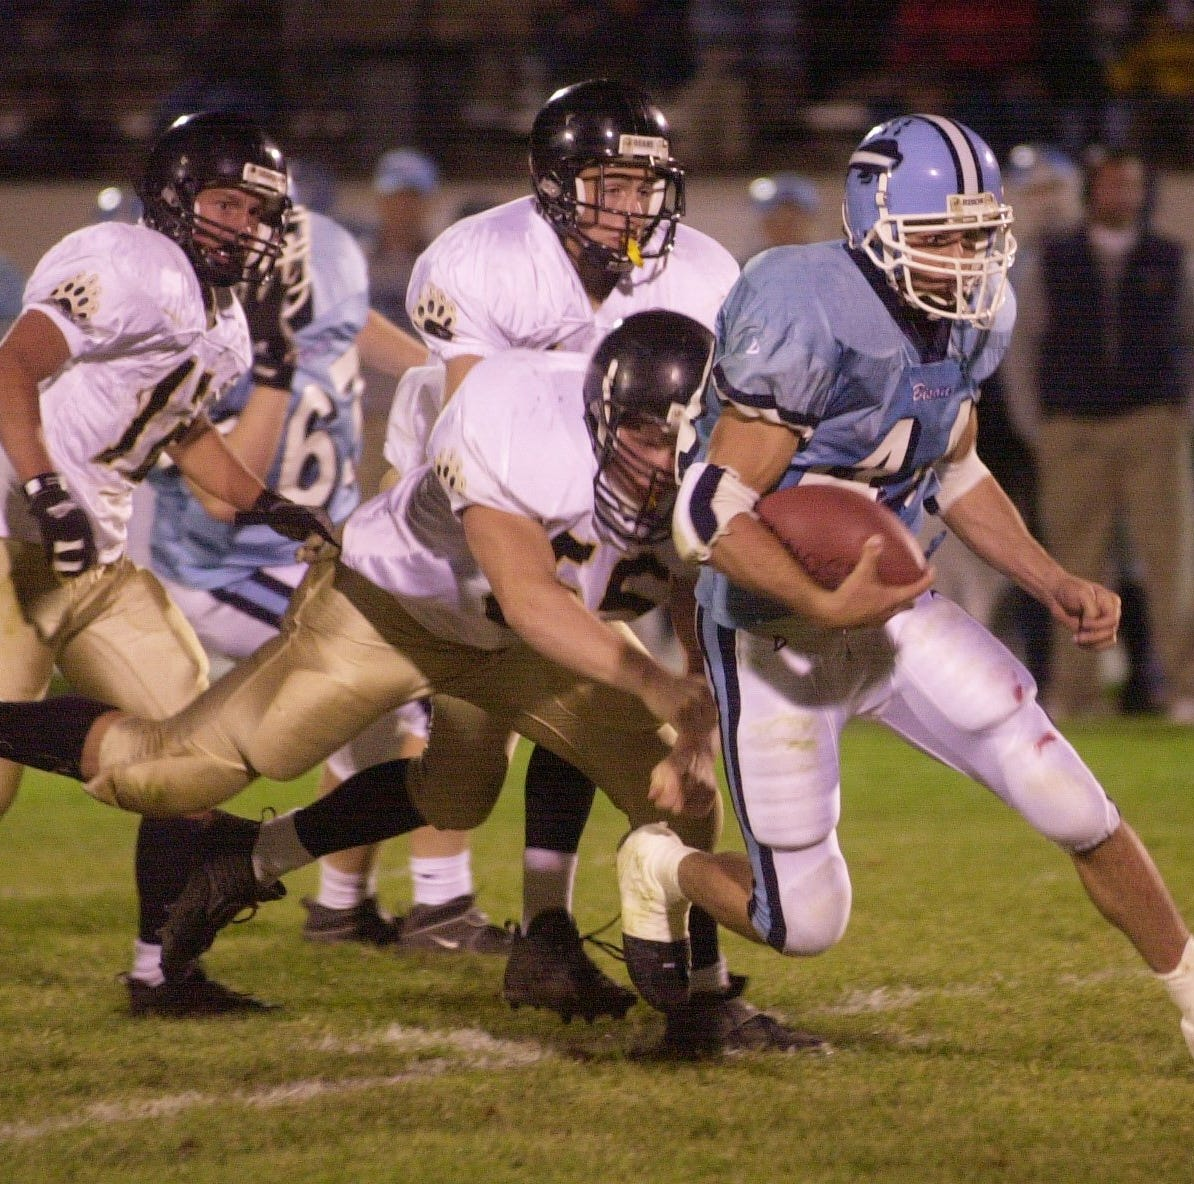 Family, football mean much to Great Falls High's Teague Egan